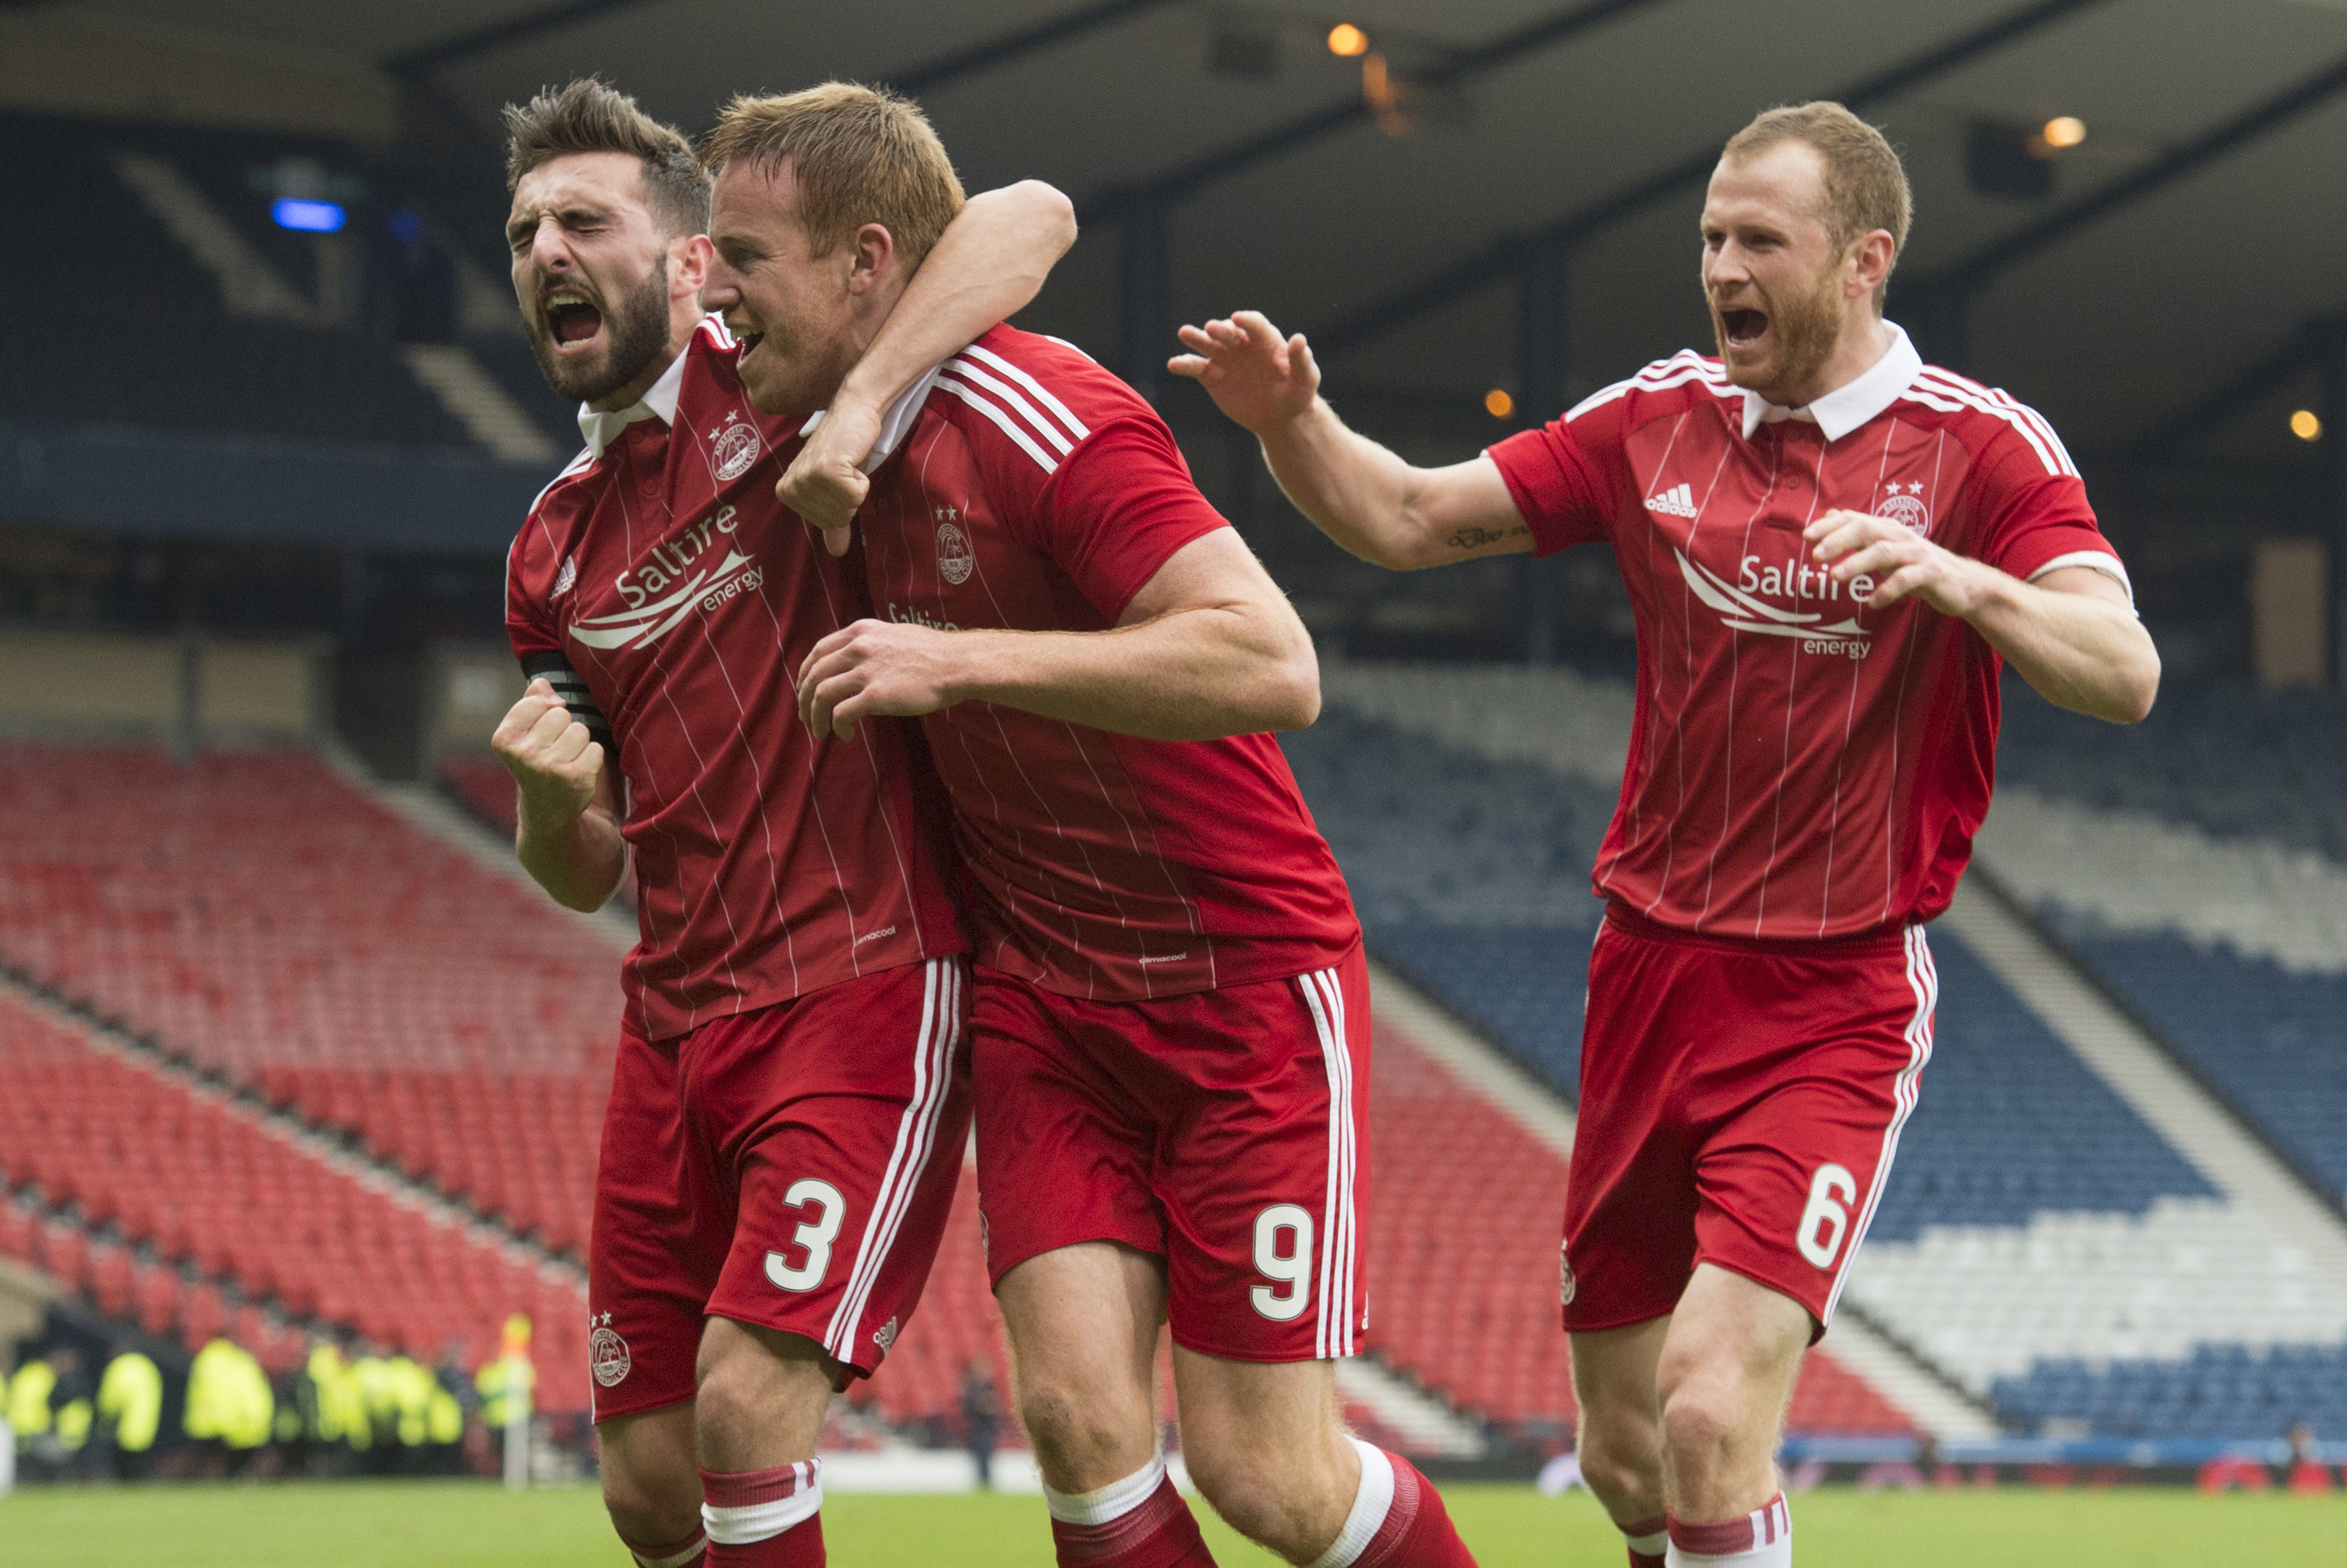 Mark Reynolds, right, and Graeme Shinnie, left, celebrate Adam Rooney's vital Betfred Cup goal against Morton at Hampden.